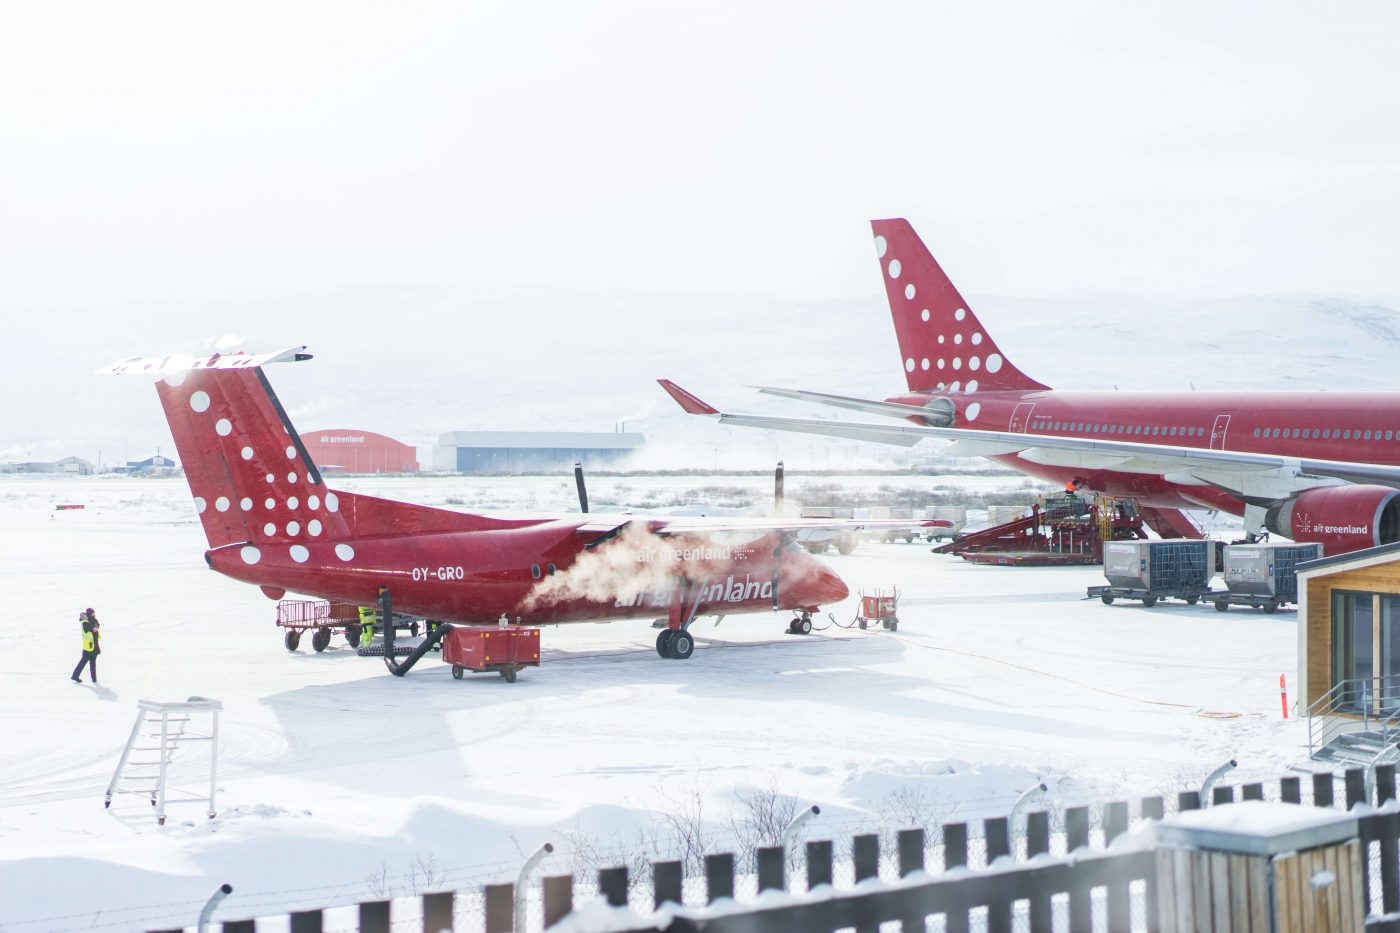 Air Greenland airplanes waiting for takeoff in Kangerlussuaq. Photo by Filip Gielda, Visit Greenland